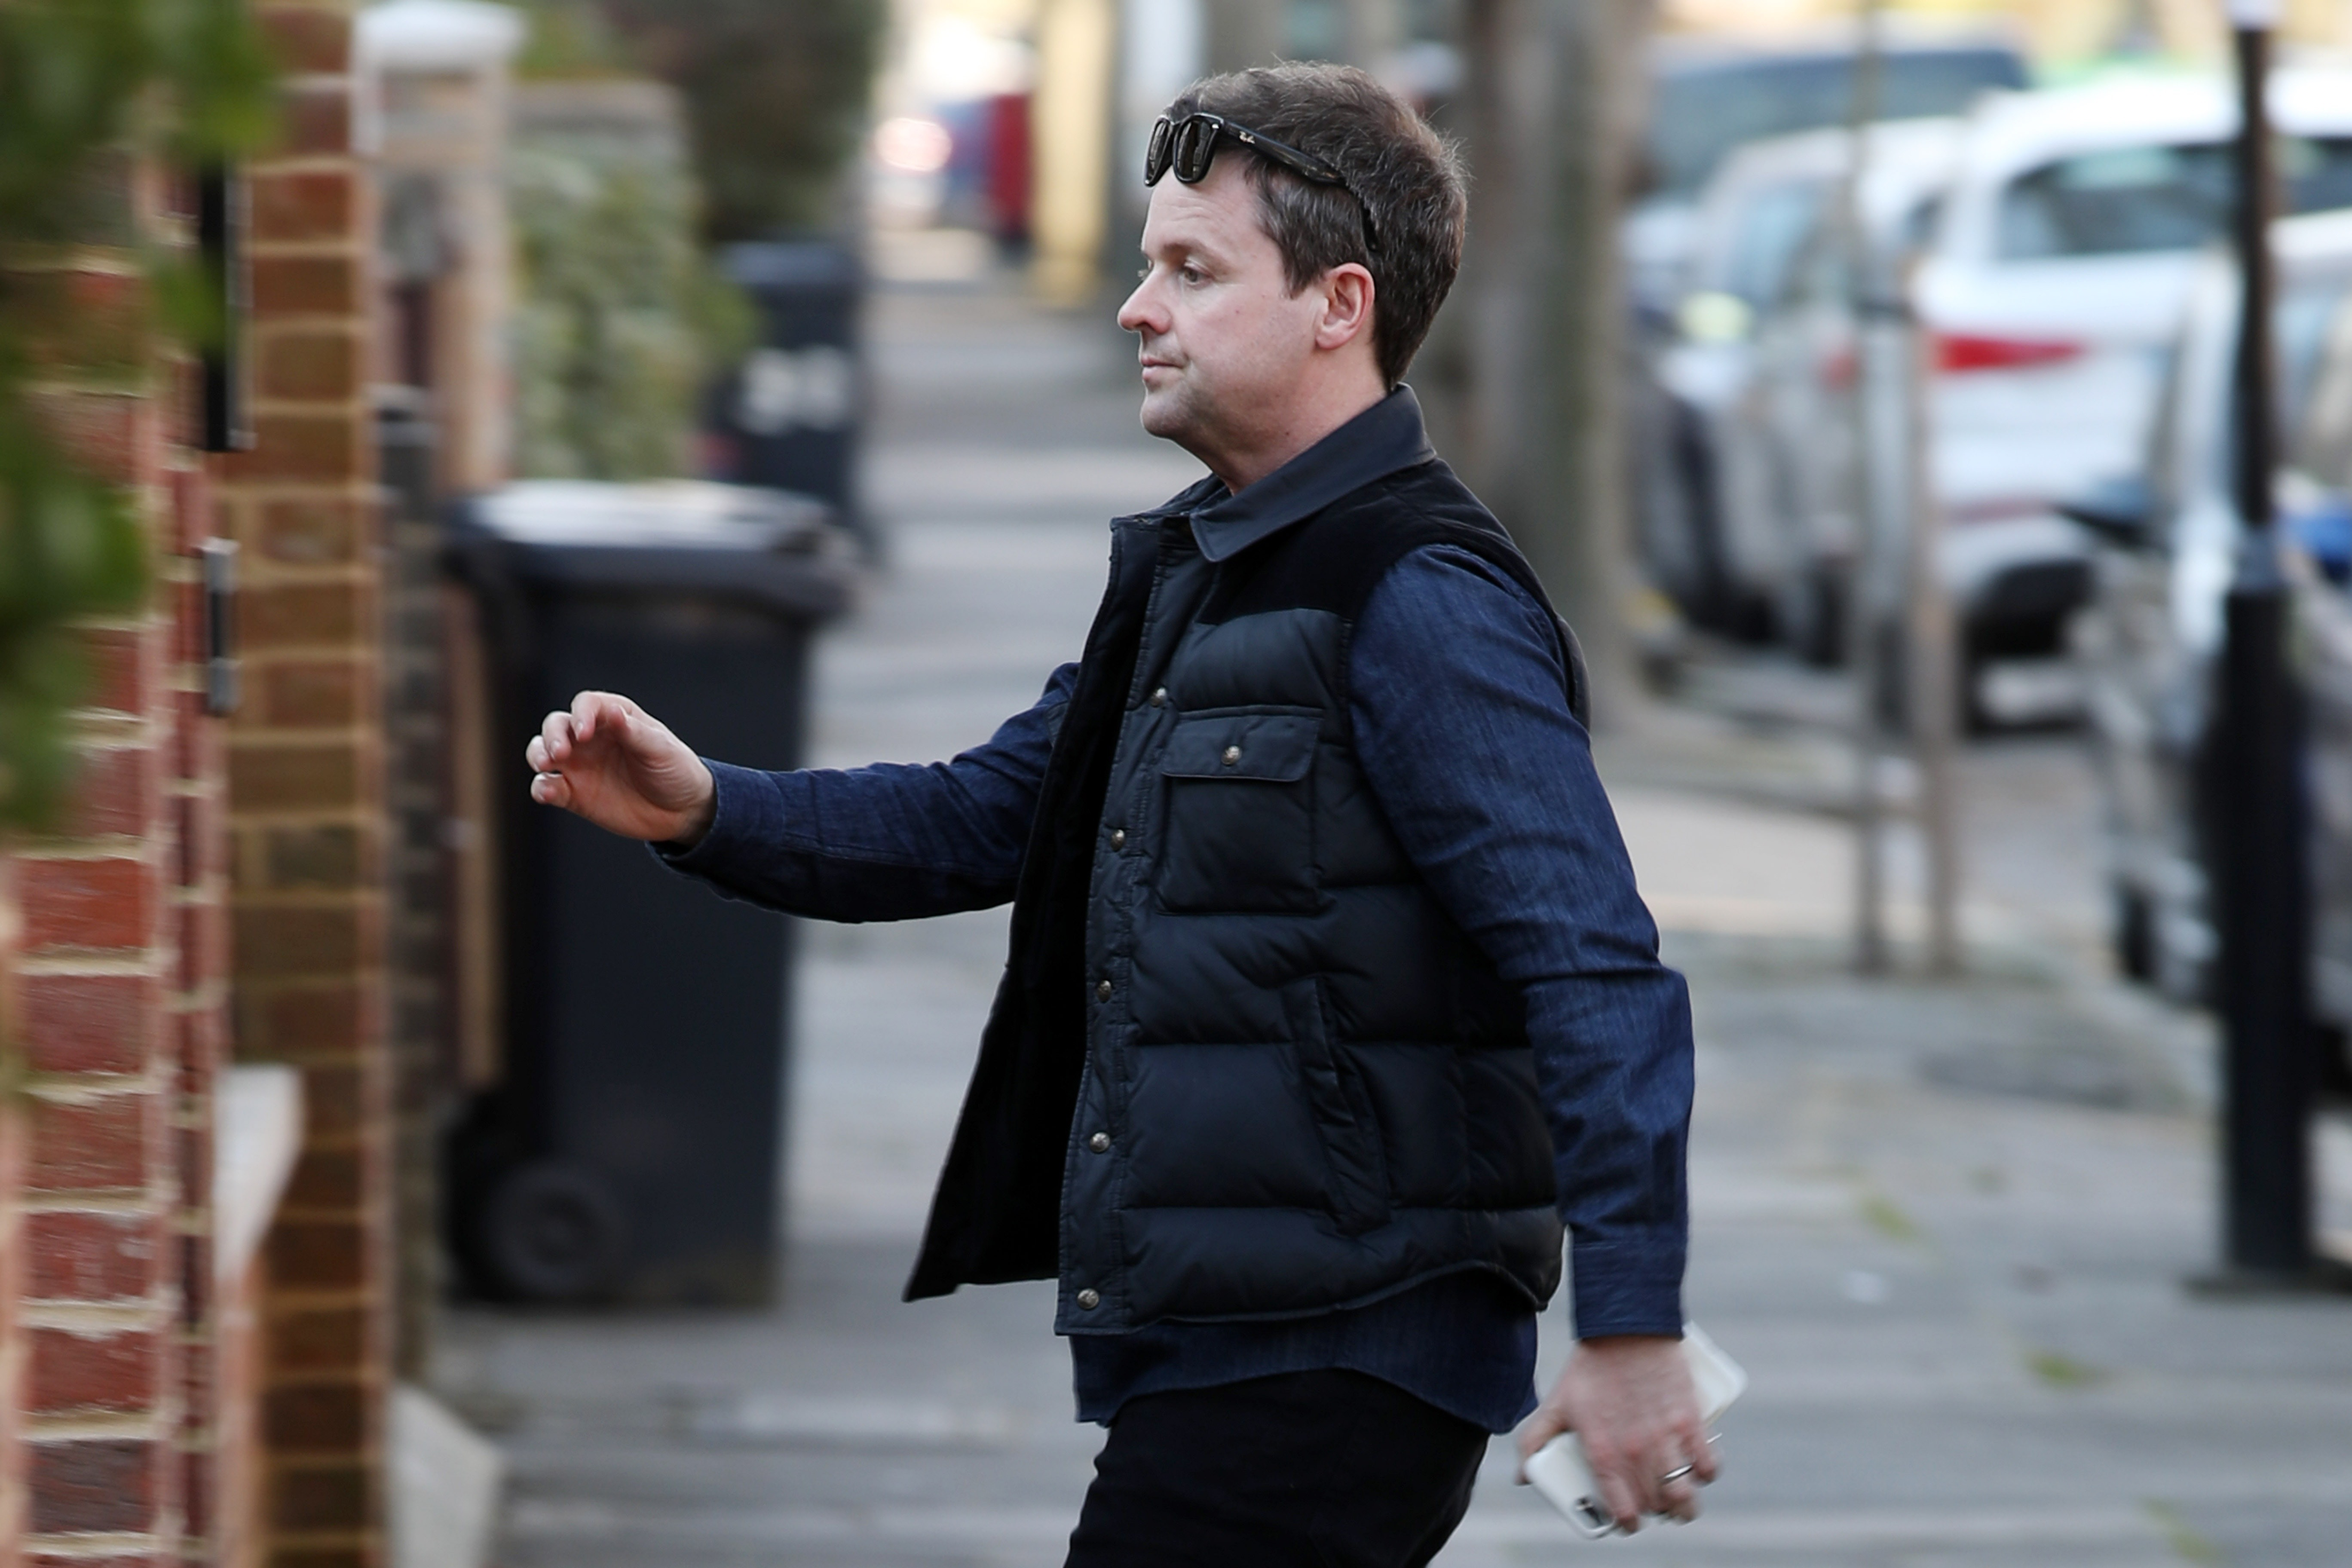 Declan Donnelly pictured arriving at Ant McPartlin's home after police visit